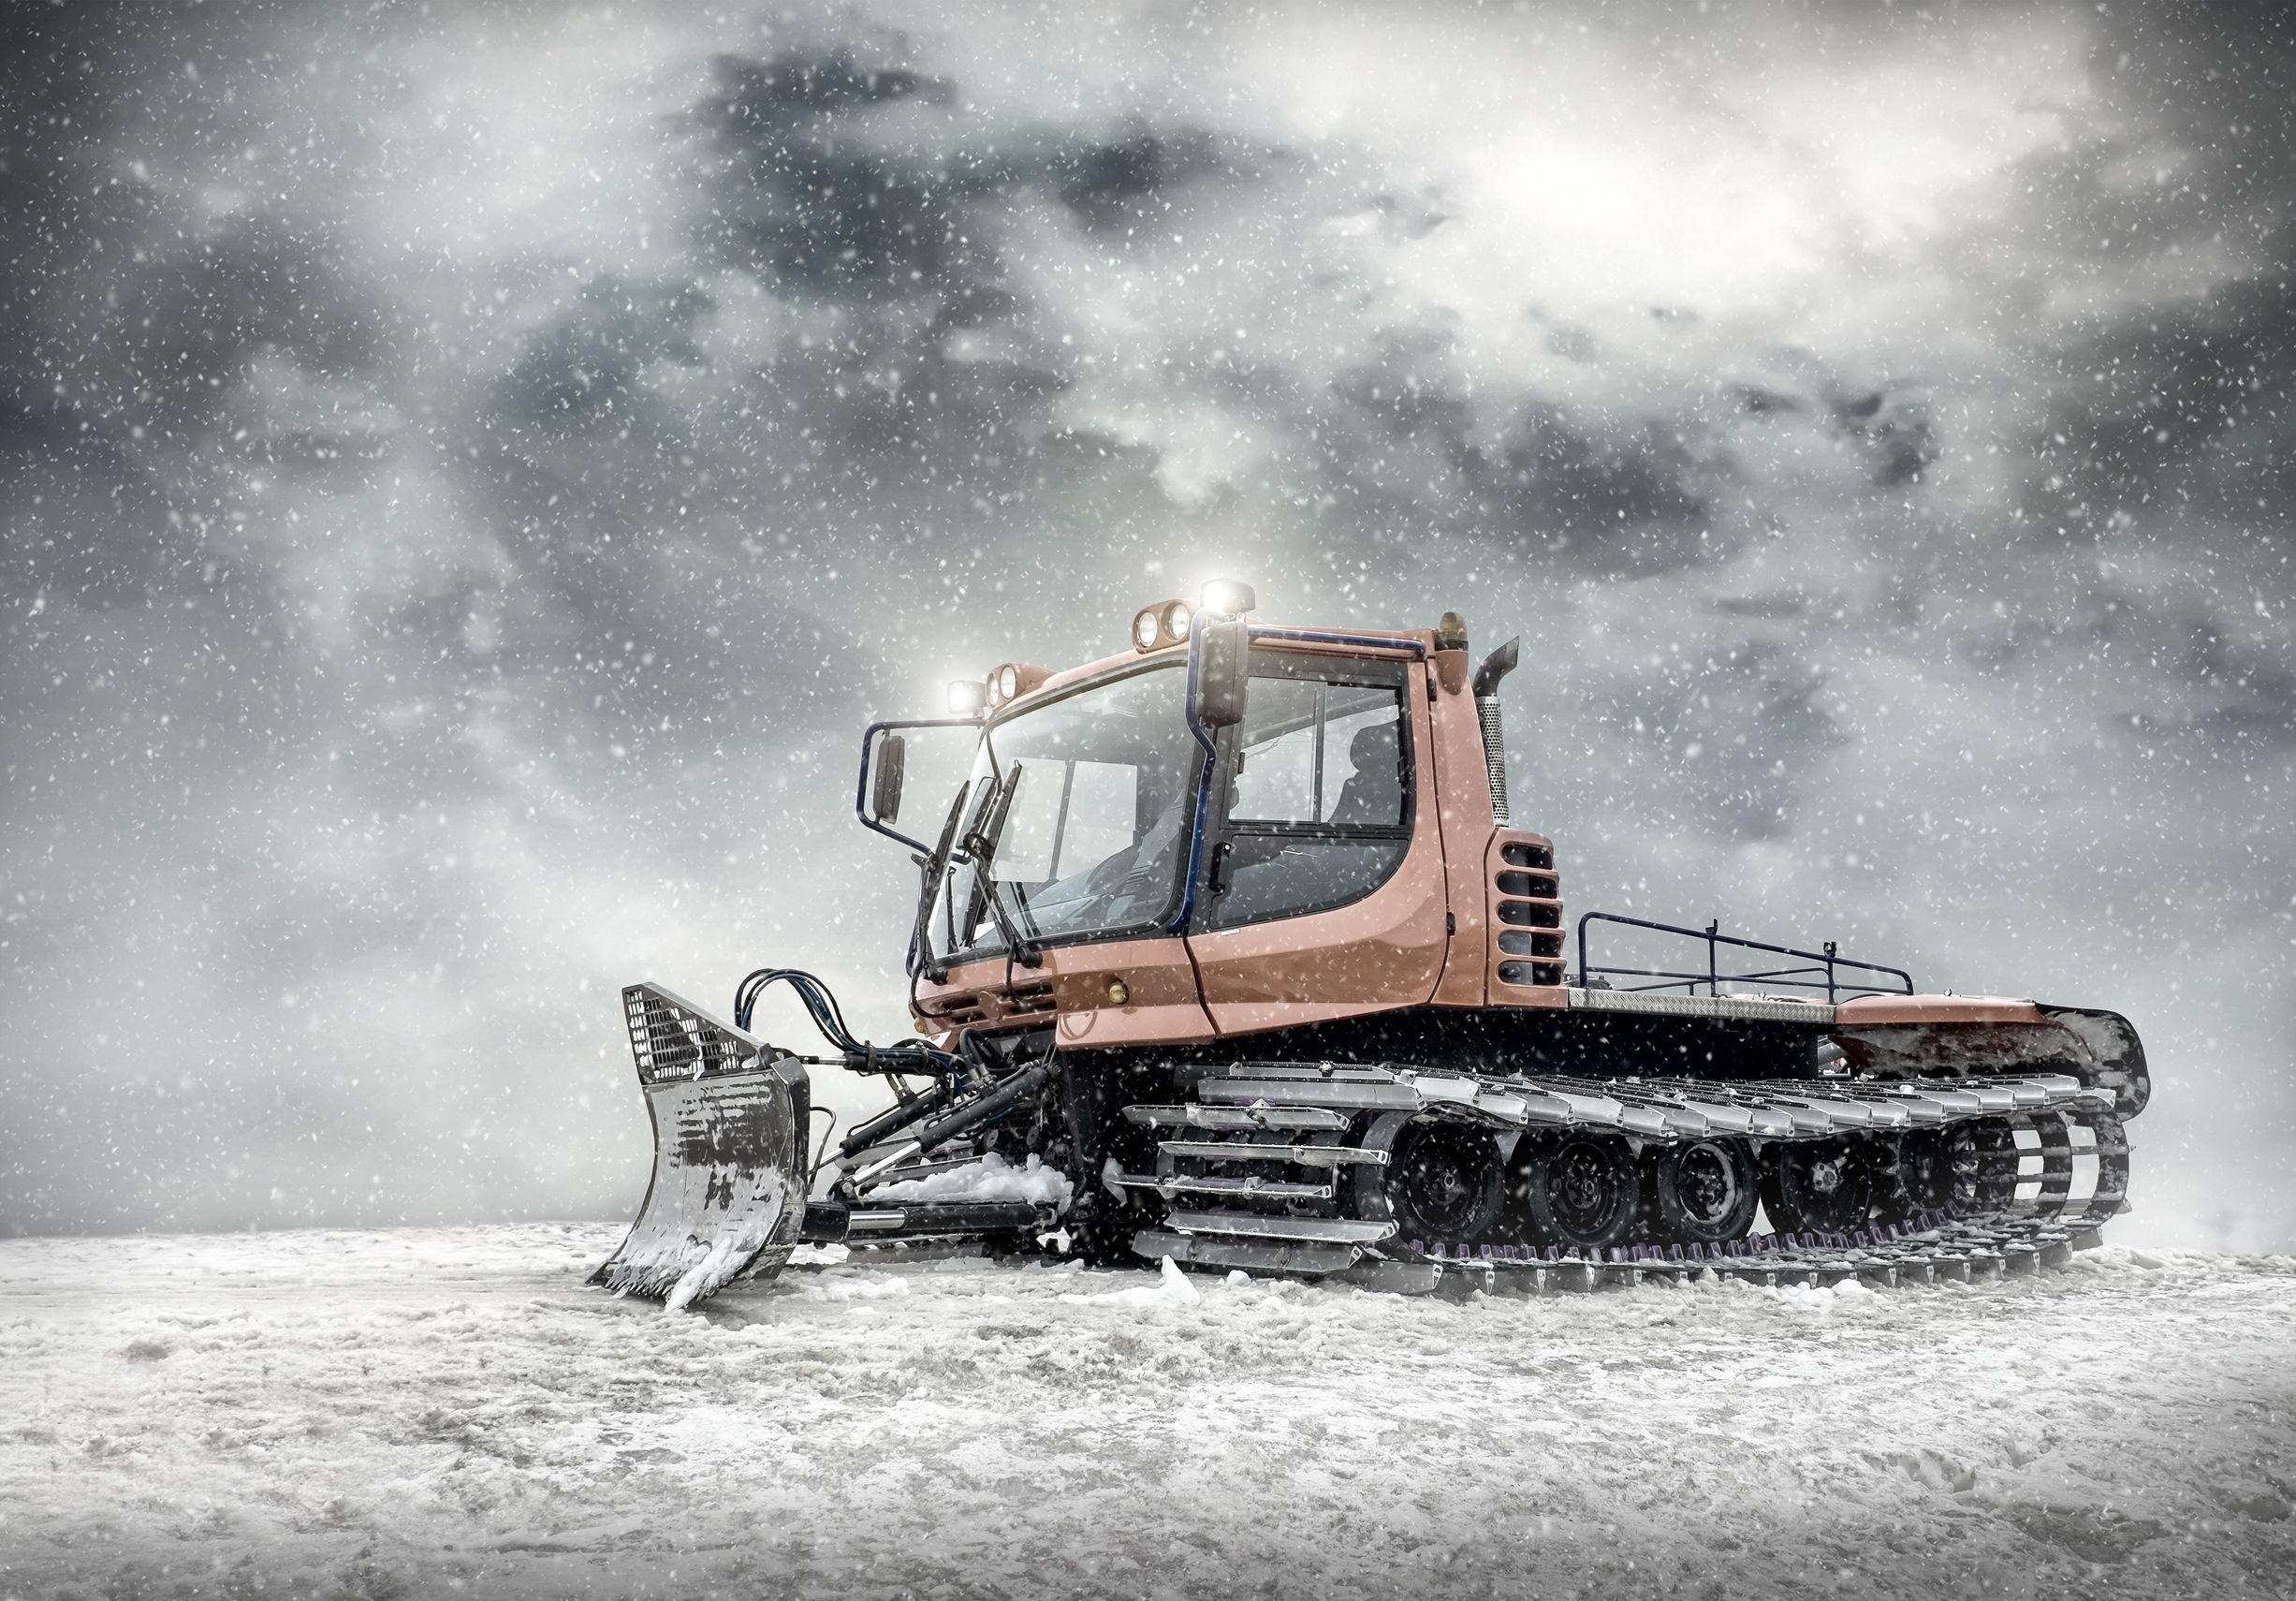 Why Champaign Snow Removal Should Be a Non-Negotiable Business Expense